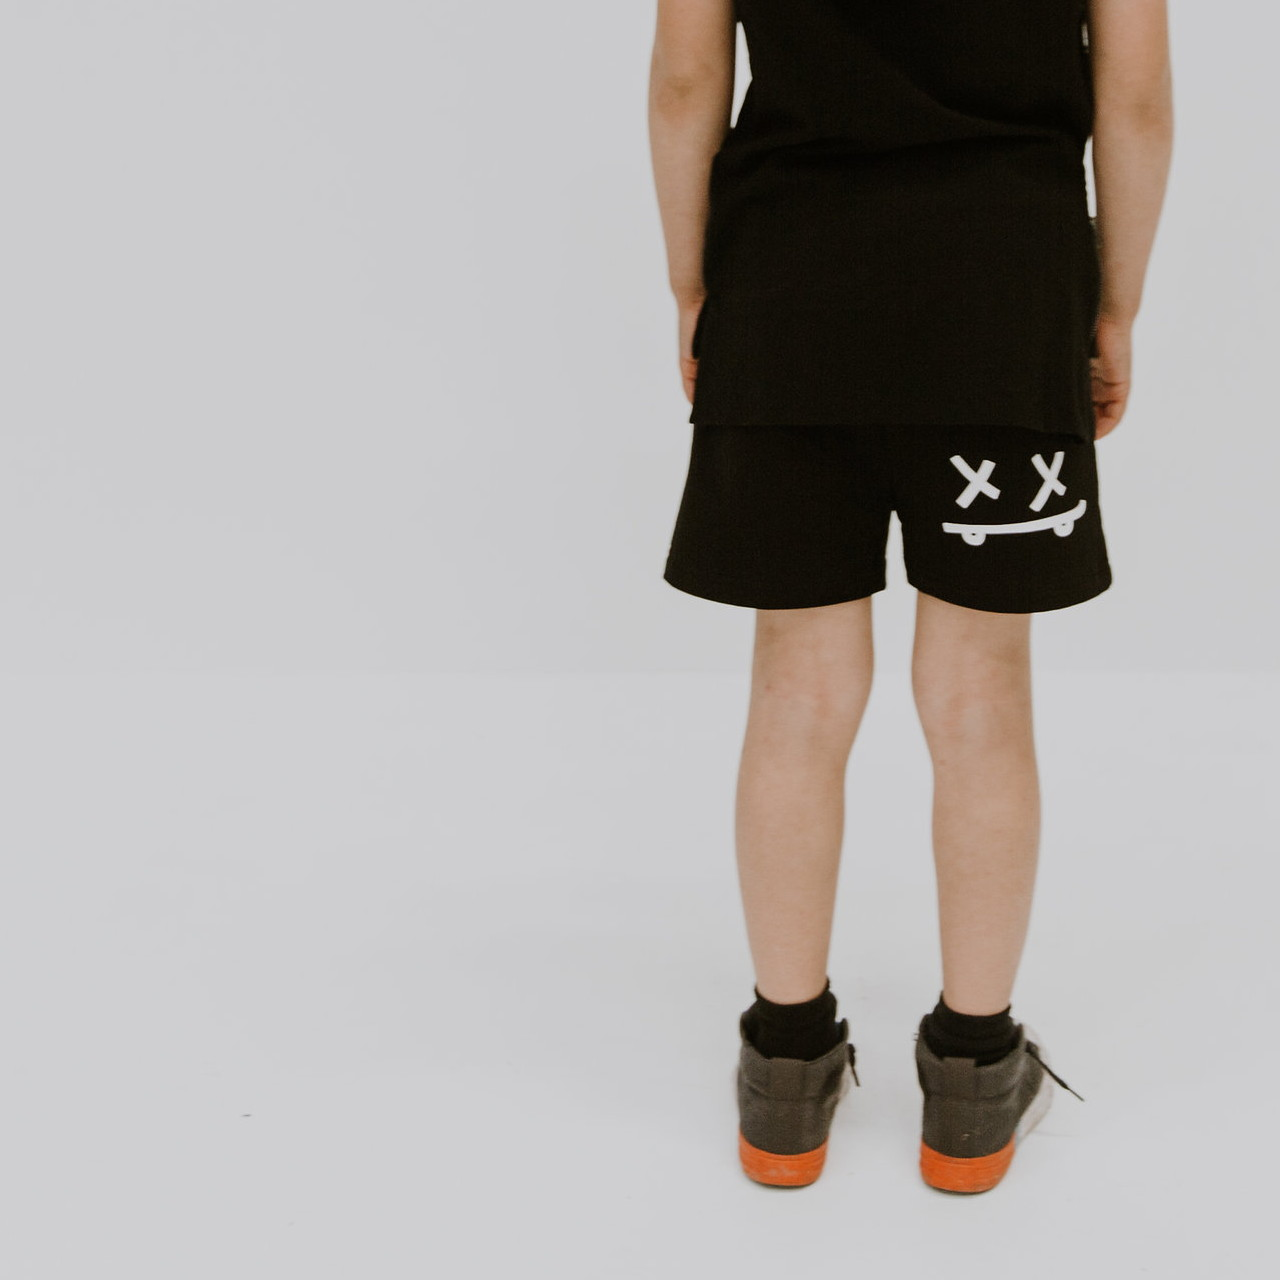 Skaterboy shorts by Punk Baby